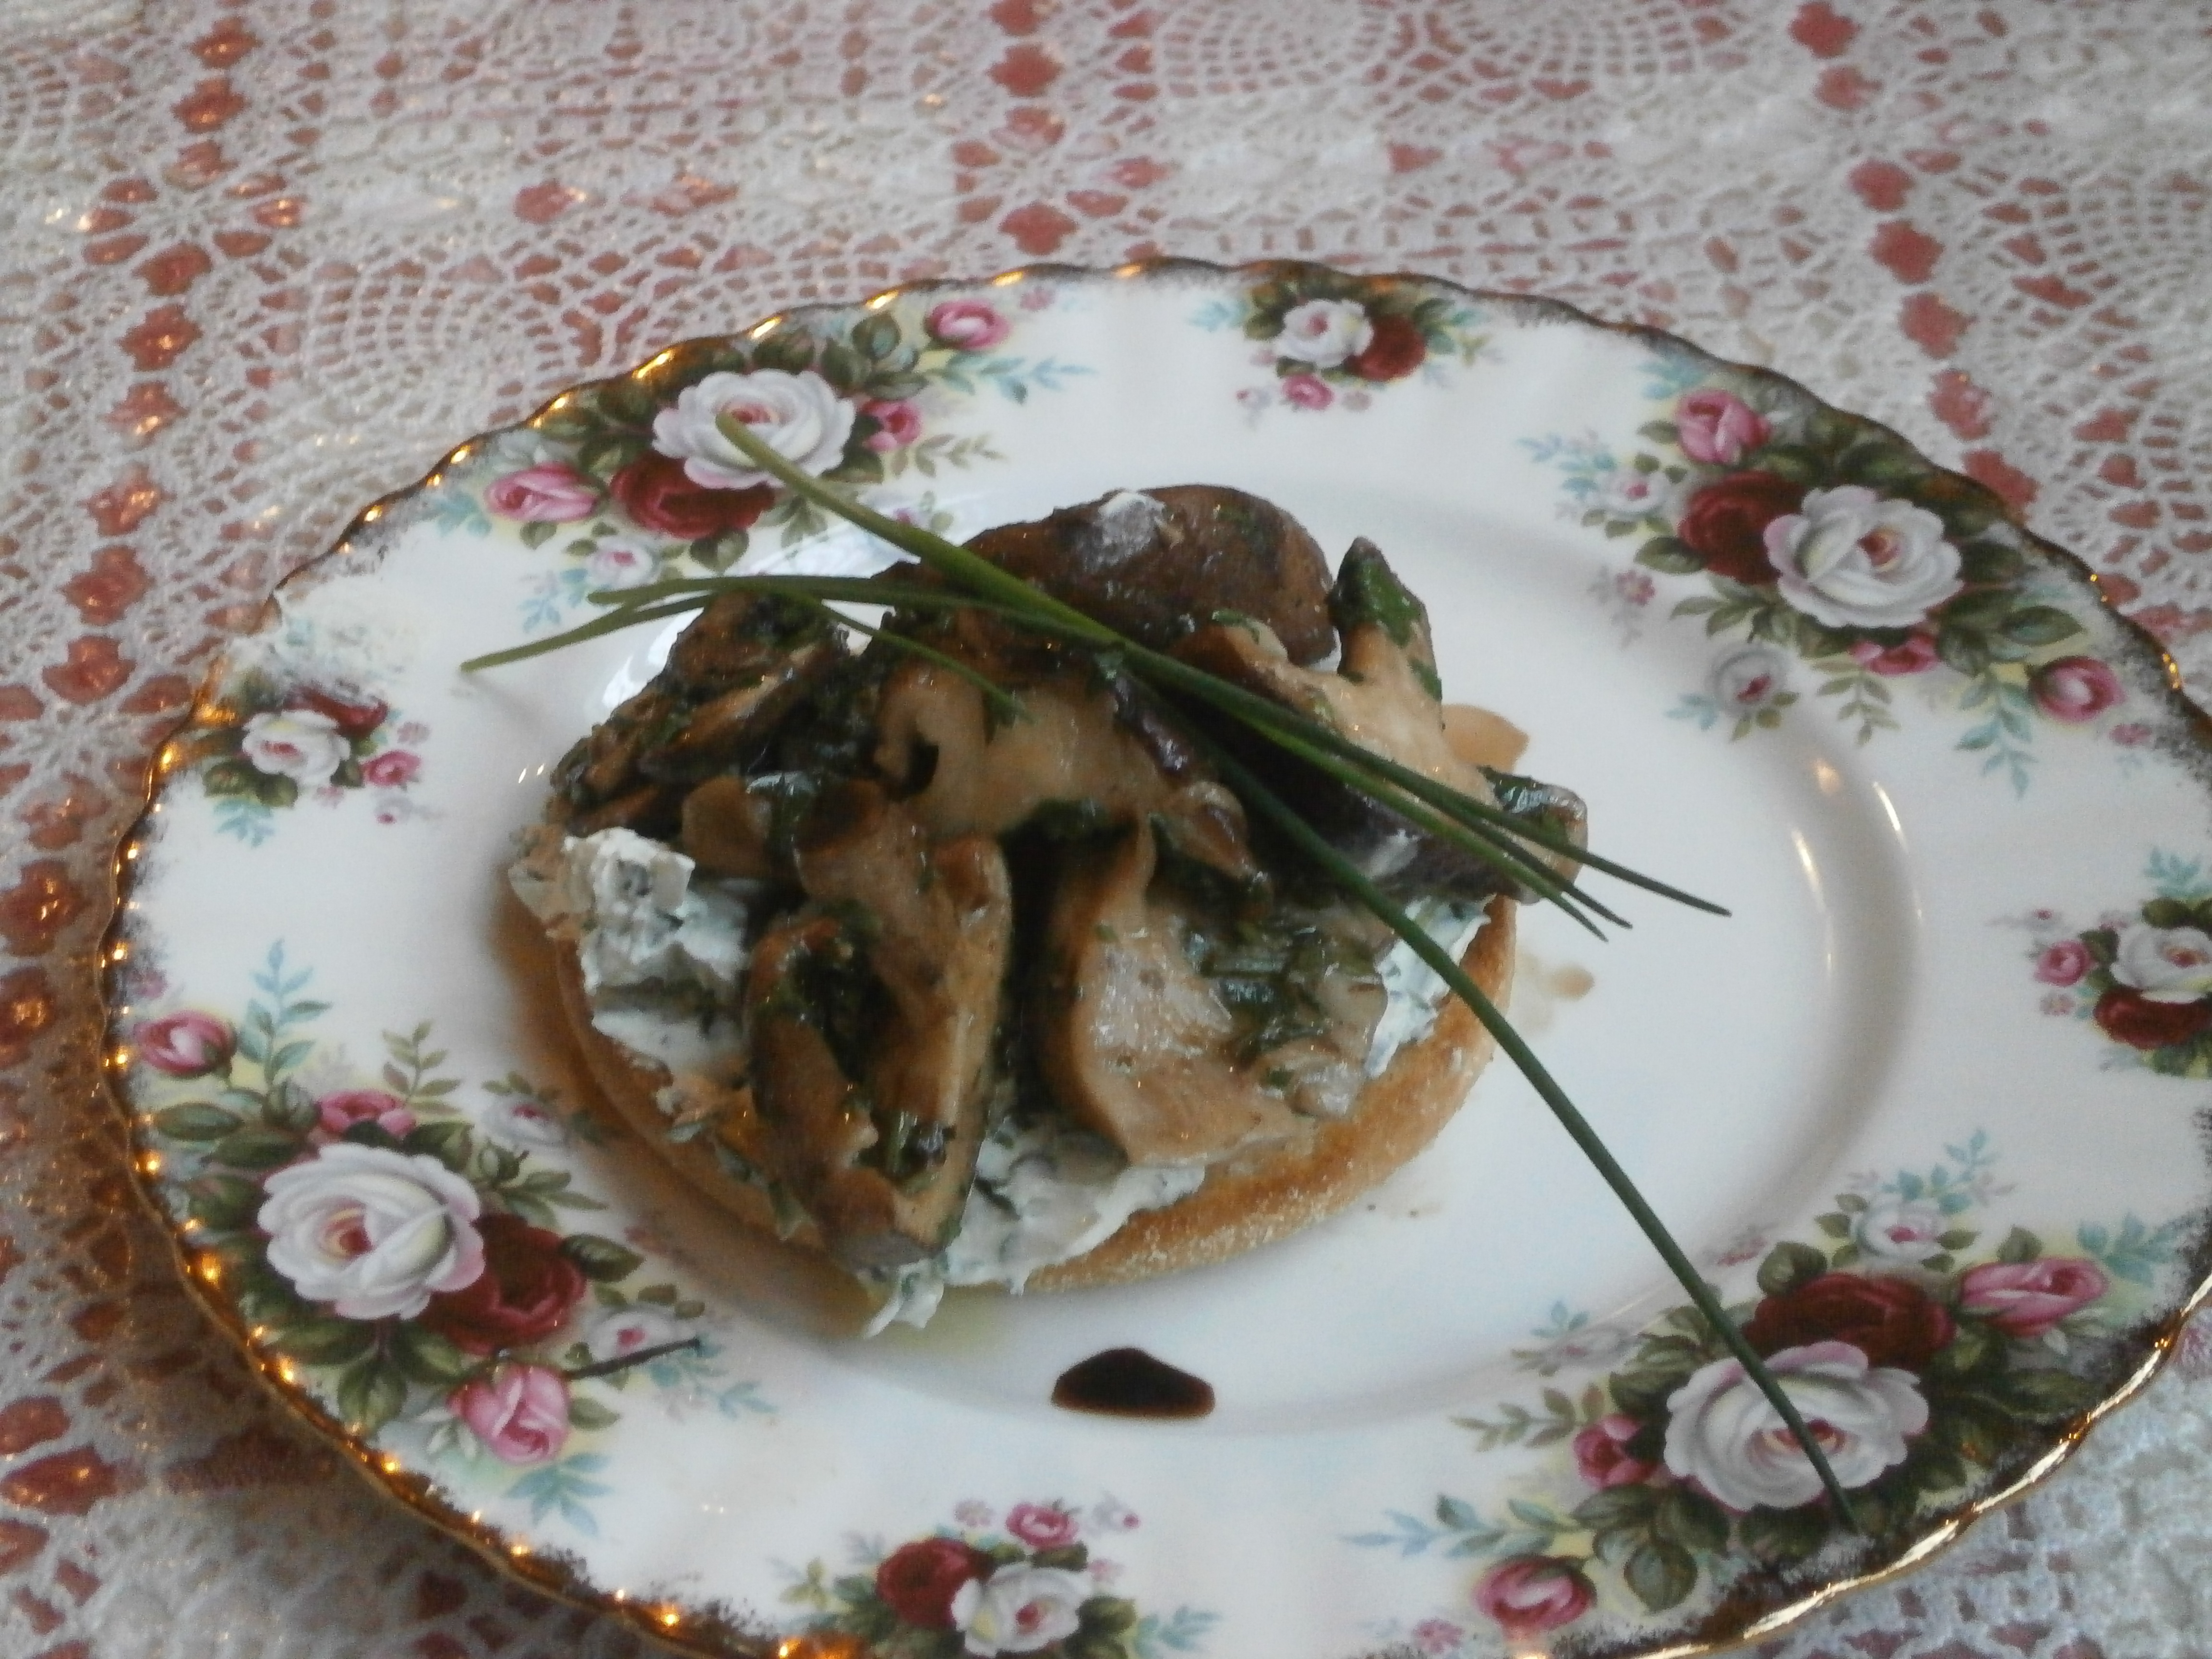 Starter Mixed Mushrooms on Herbed Muffins2.JPG